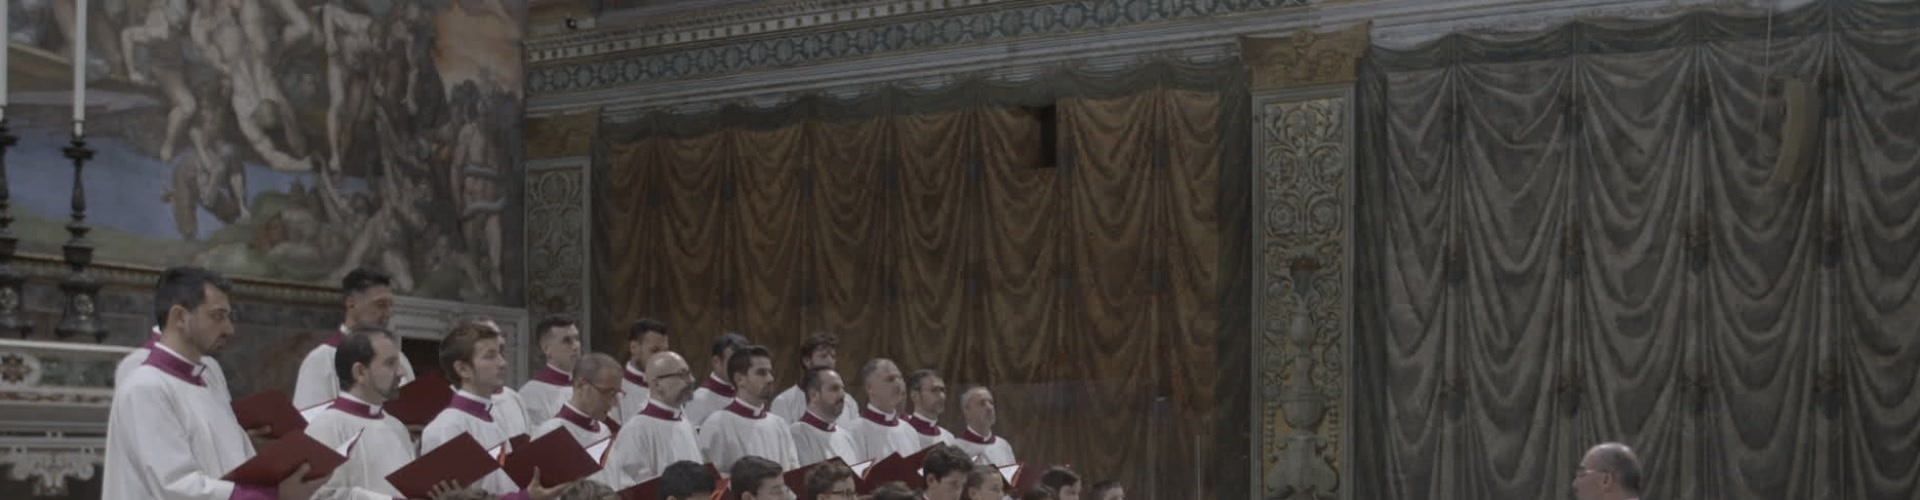 Watch The Sistine Chapel Choir Online